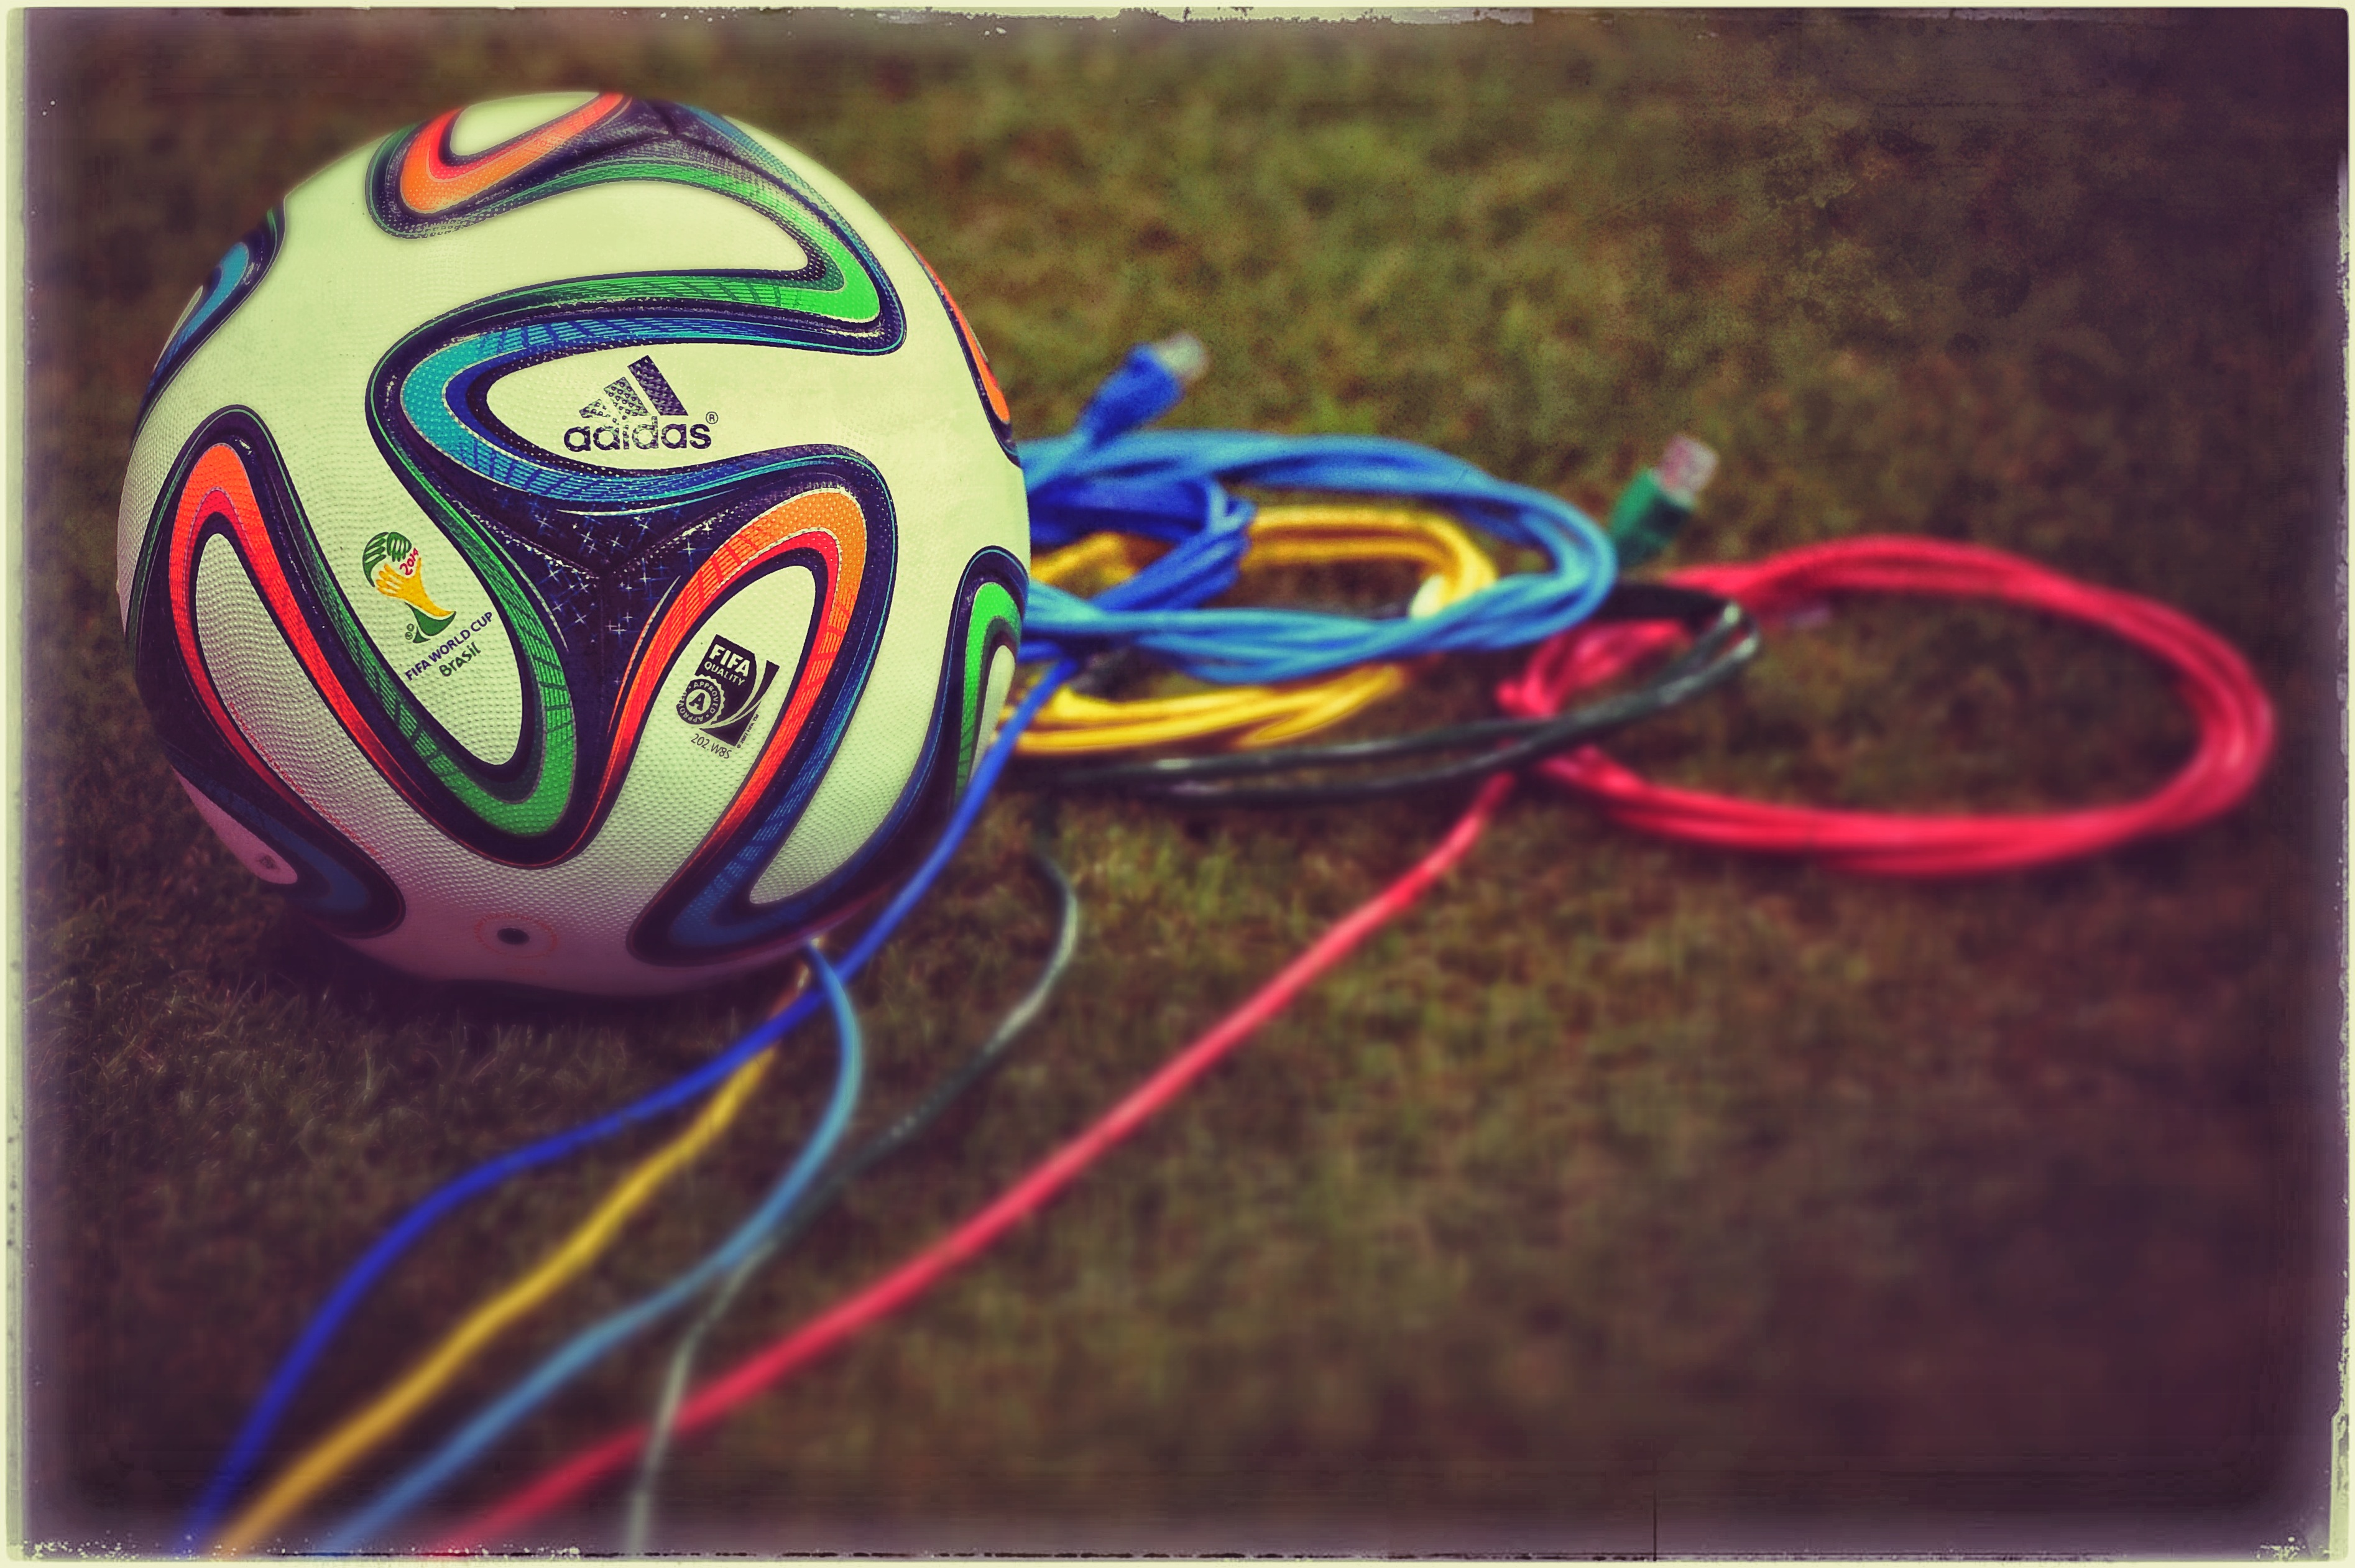 SALVADOR, BRAZIL - JUNE 12: (EDITORS NOTE: THIS IMAGES HAS BEEN CREATED WITH THE USE OF DIGITAL FILTERS)  A Brazuca ball is s